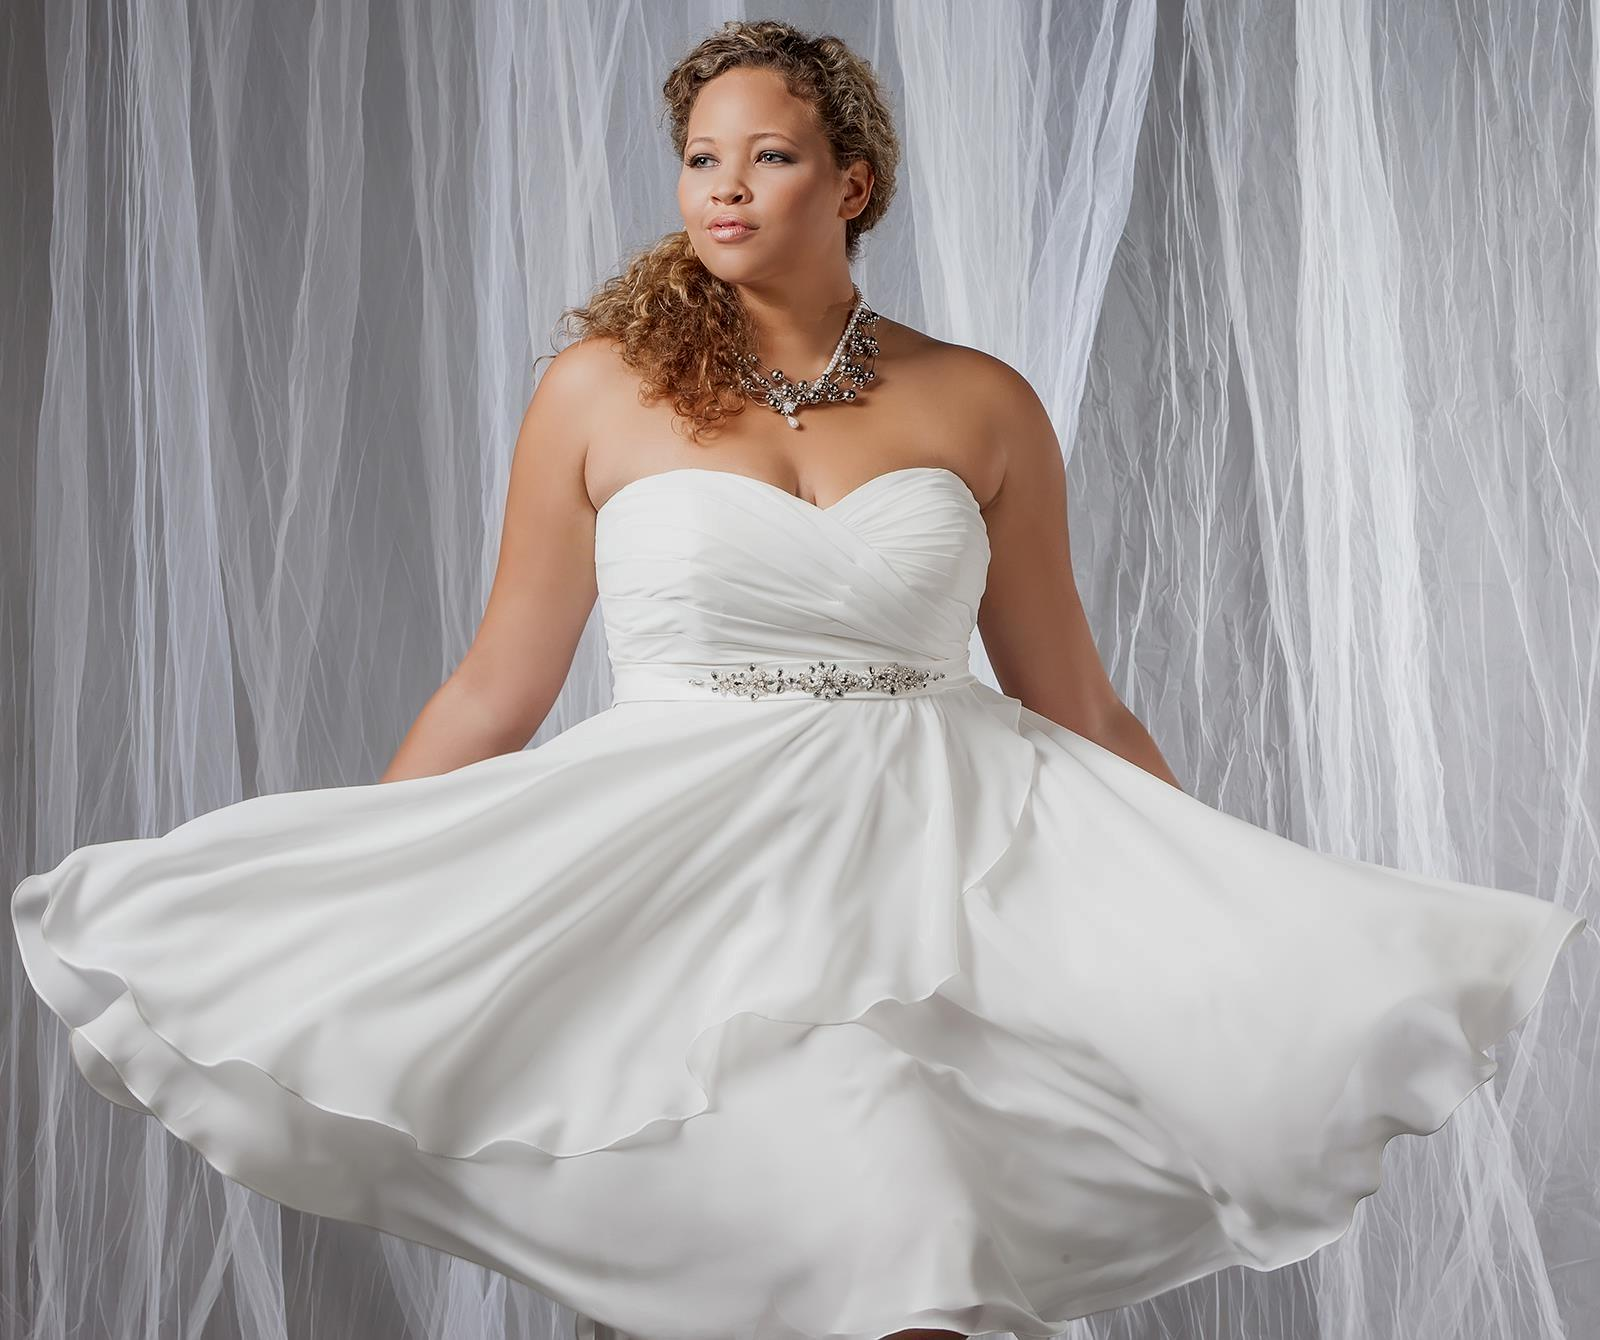 Affordable wedding dresses for plus size women 2018 plus for Wedding dresses for womens